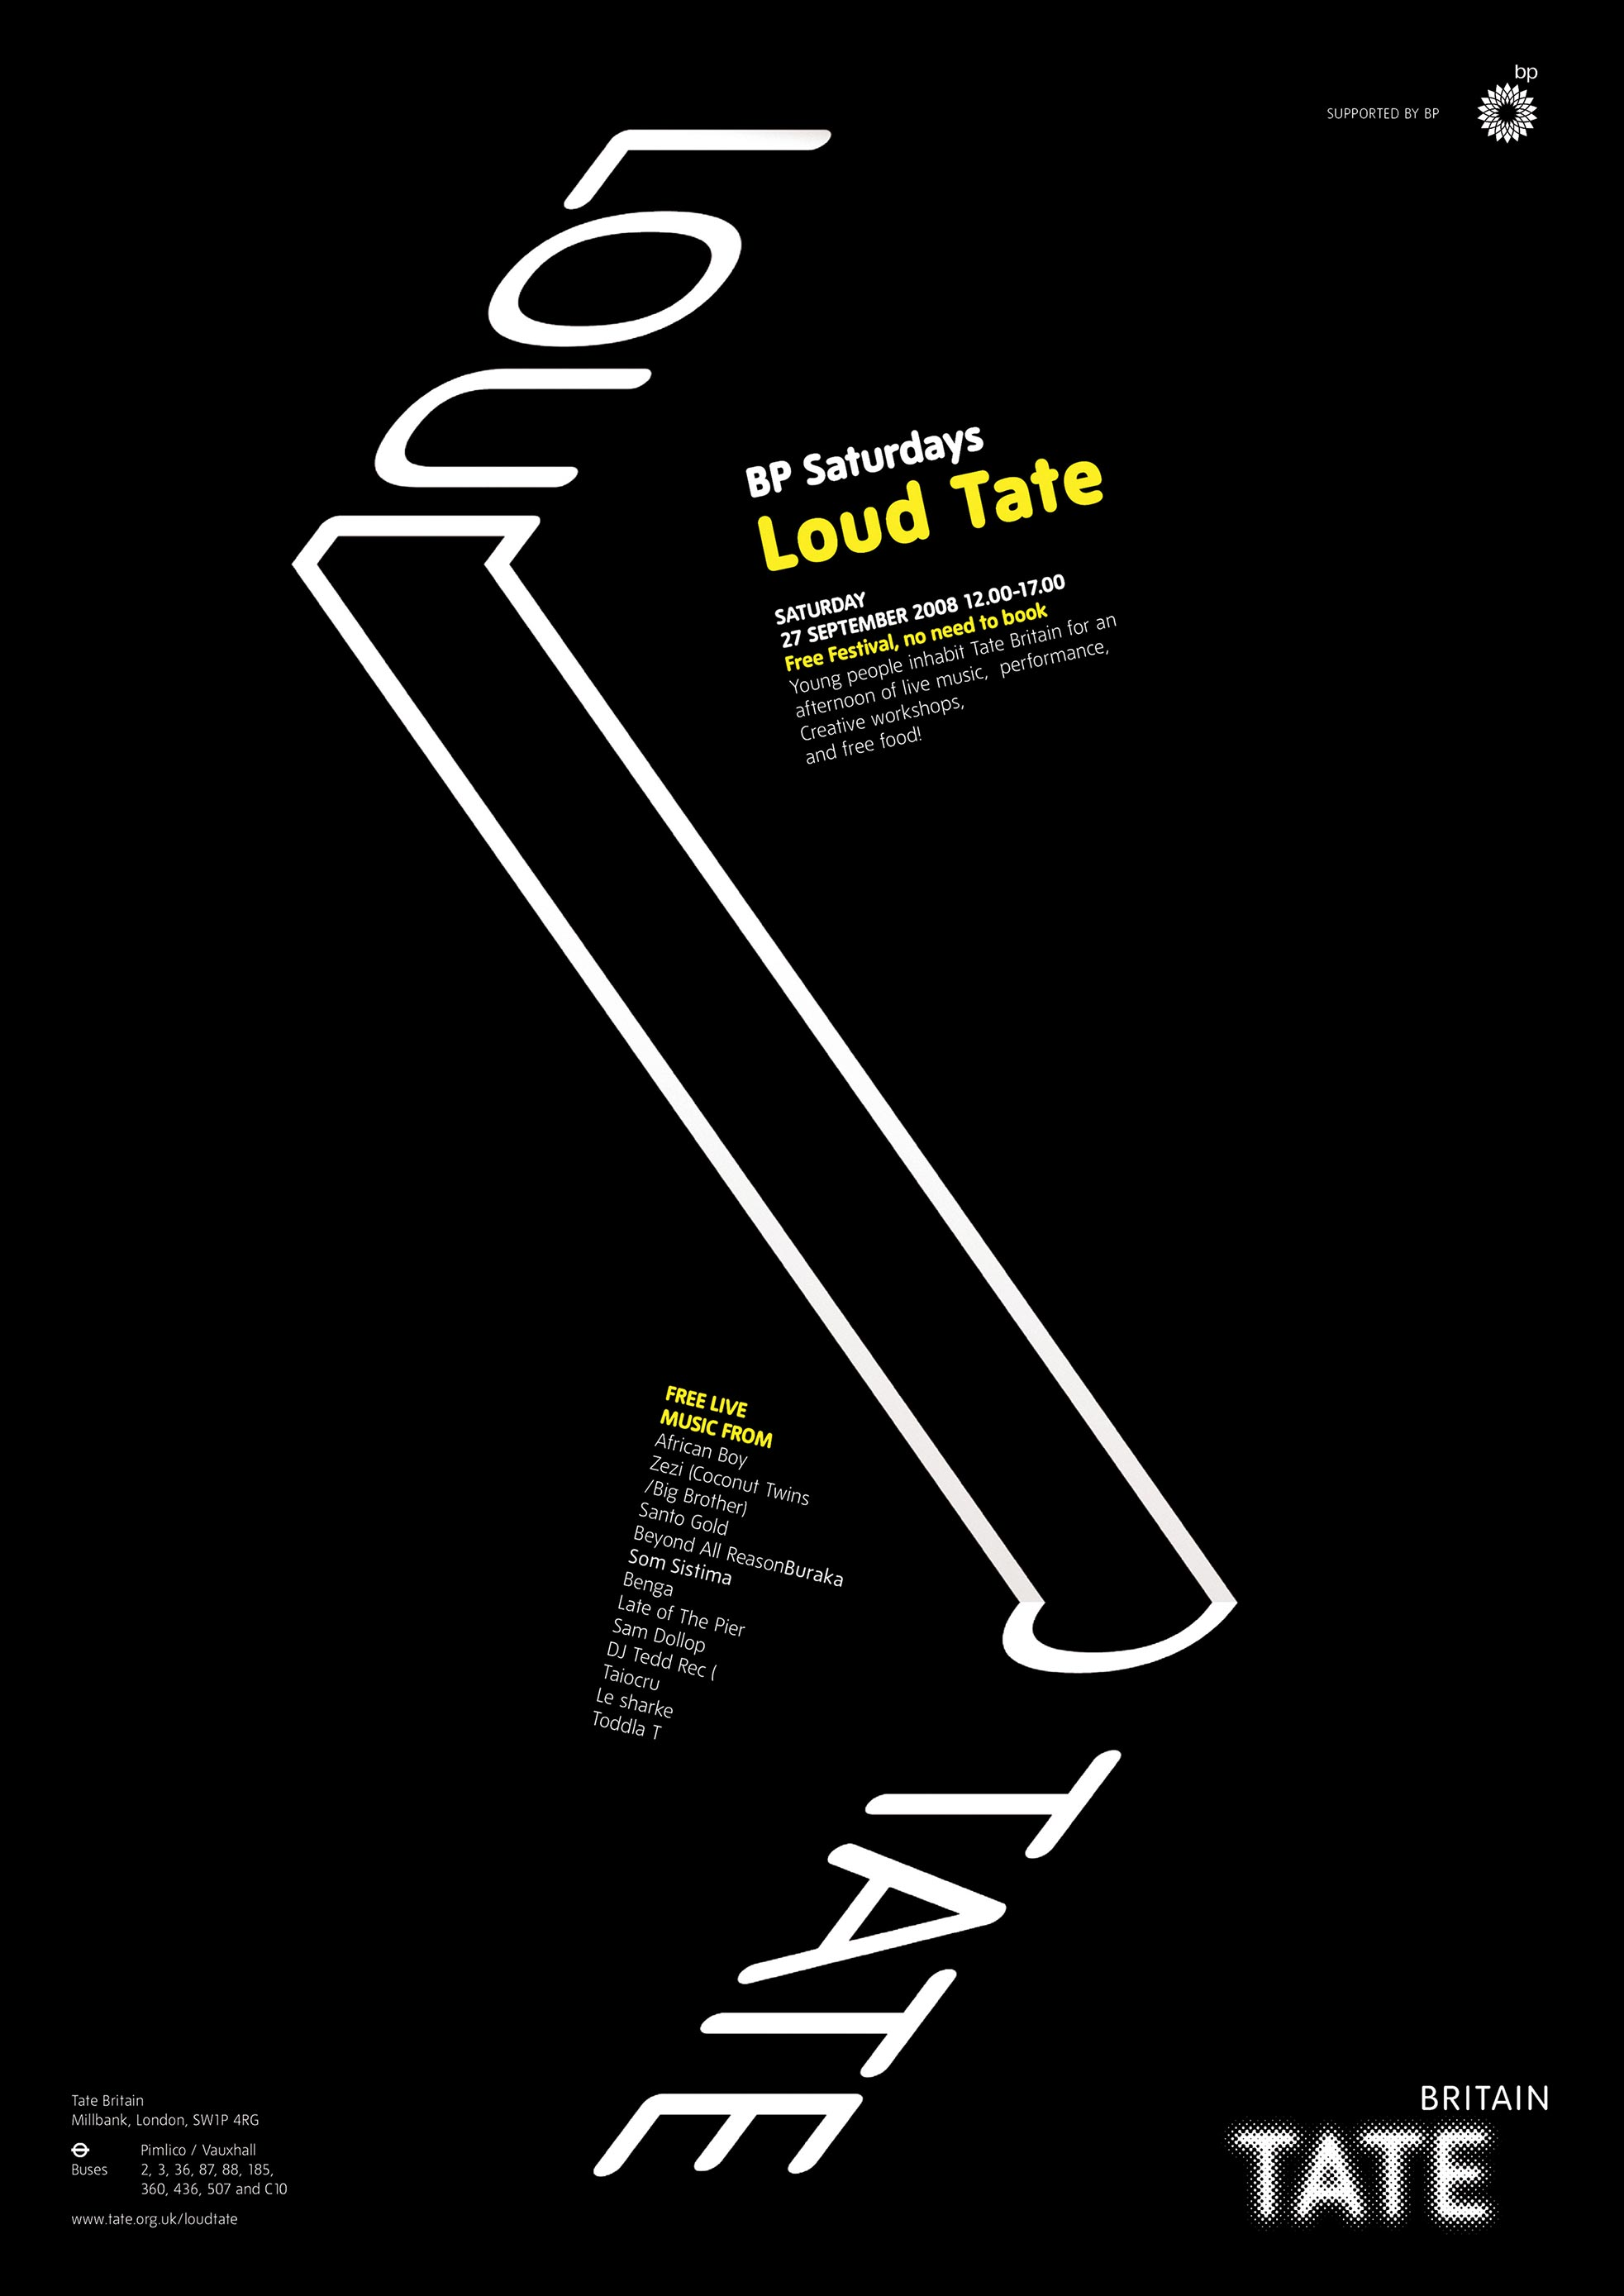 Tate - Loud Tate Festival (poster sets) - branding and design